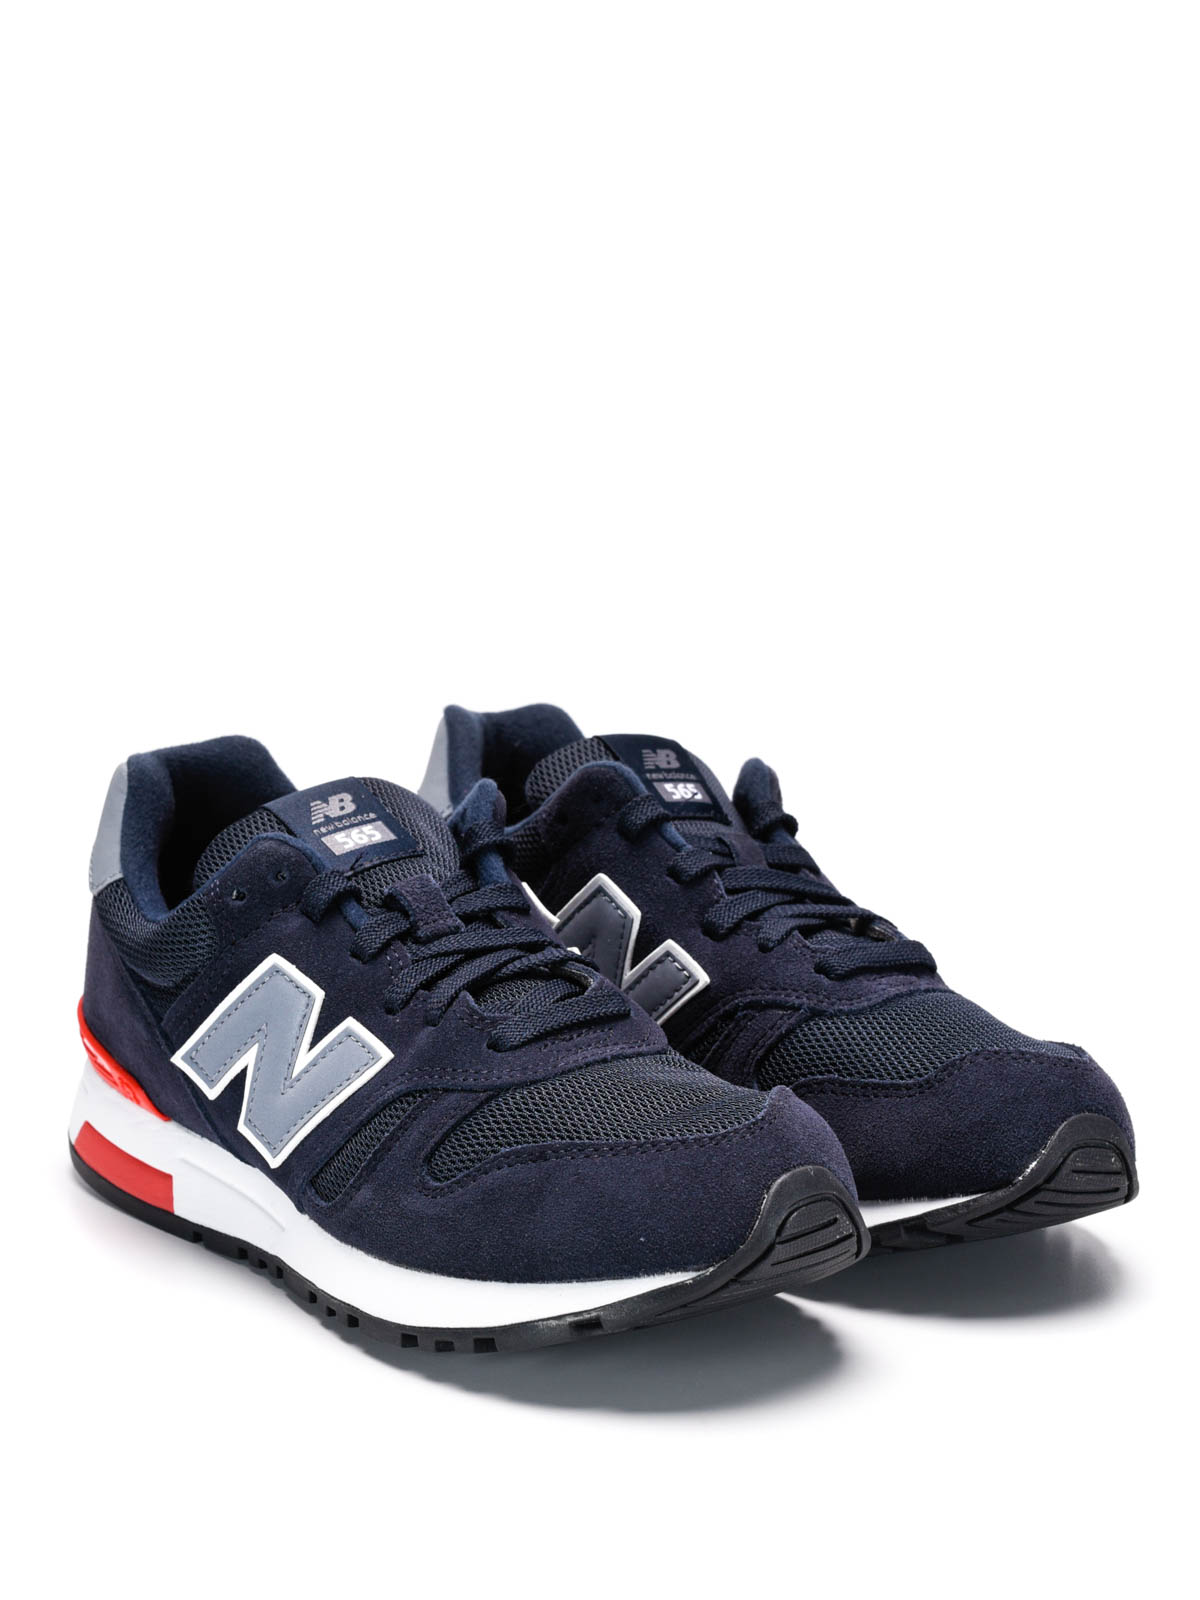 new balance modern classic, OFF 77%,Welcome to buy!